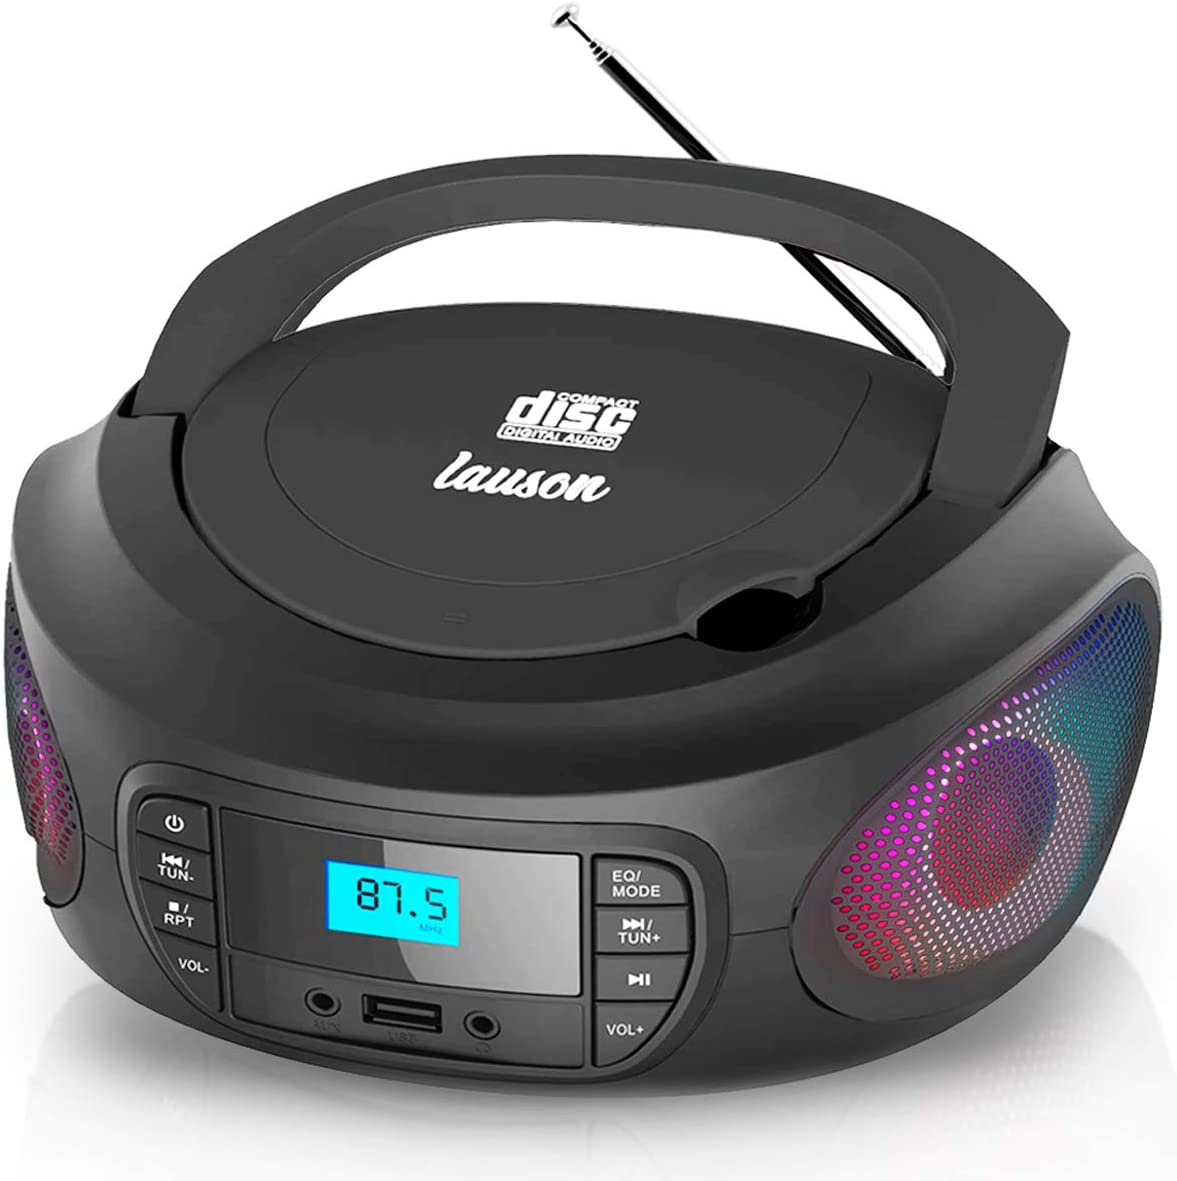 Lauson Superior Woodsound LLB598 Portable Low price CD with Speakers Small Player